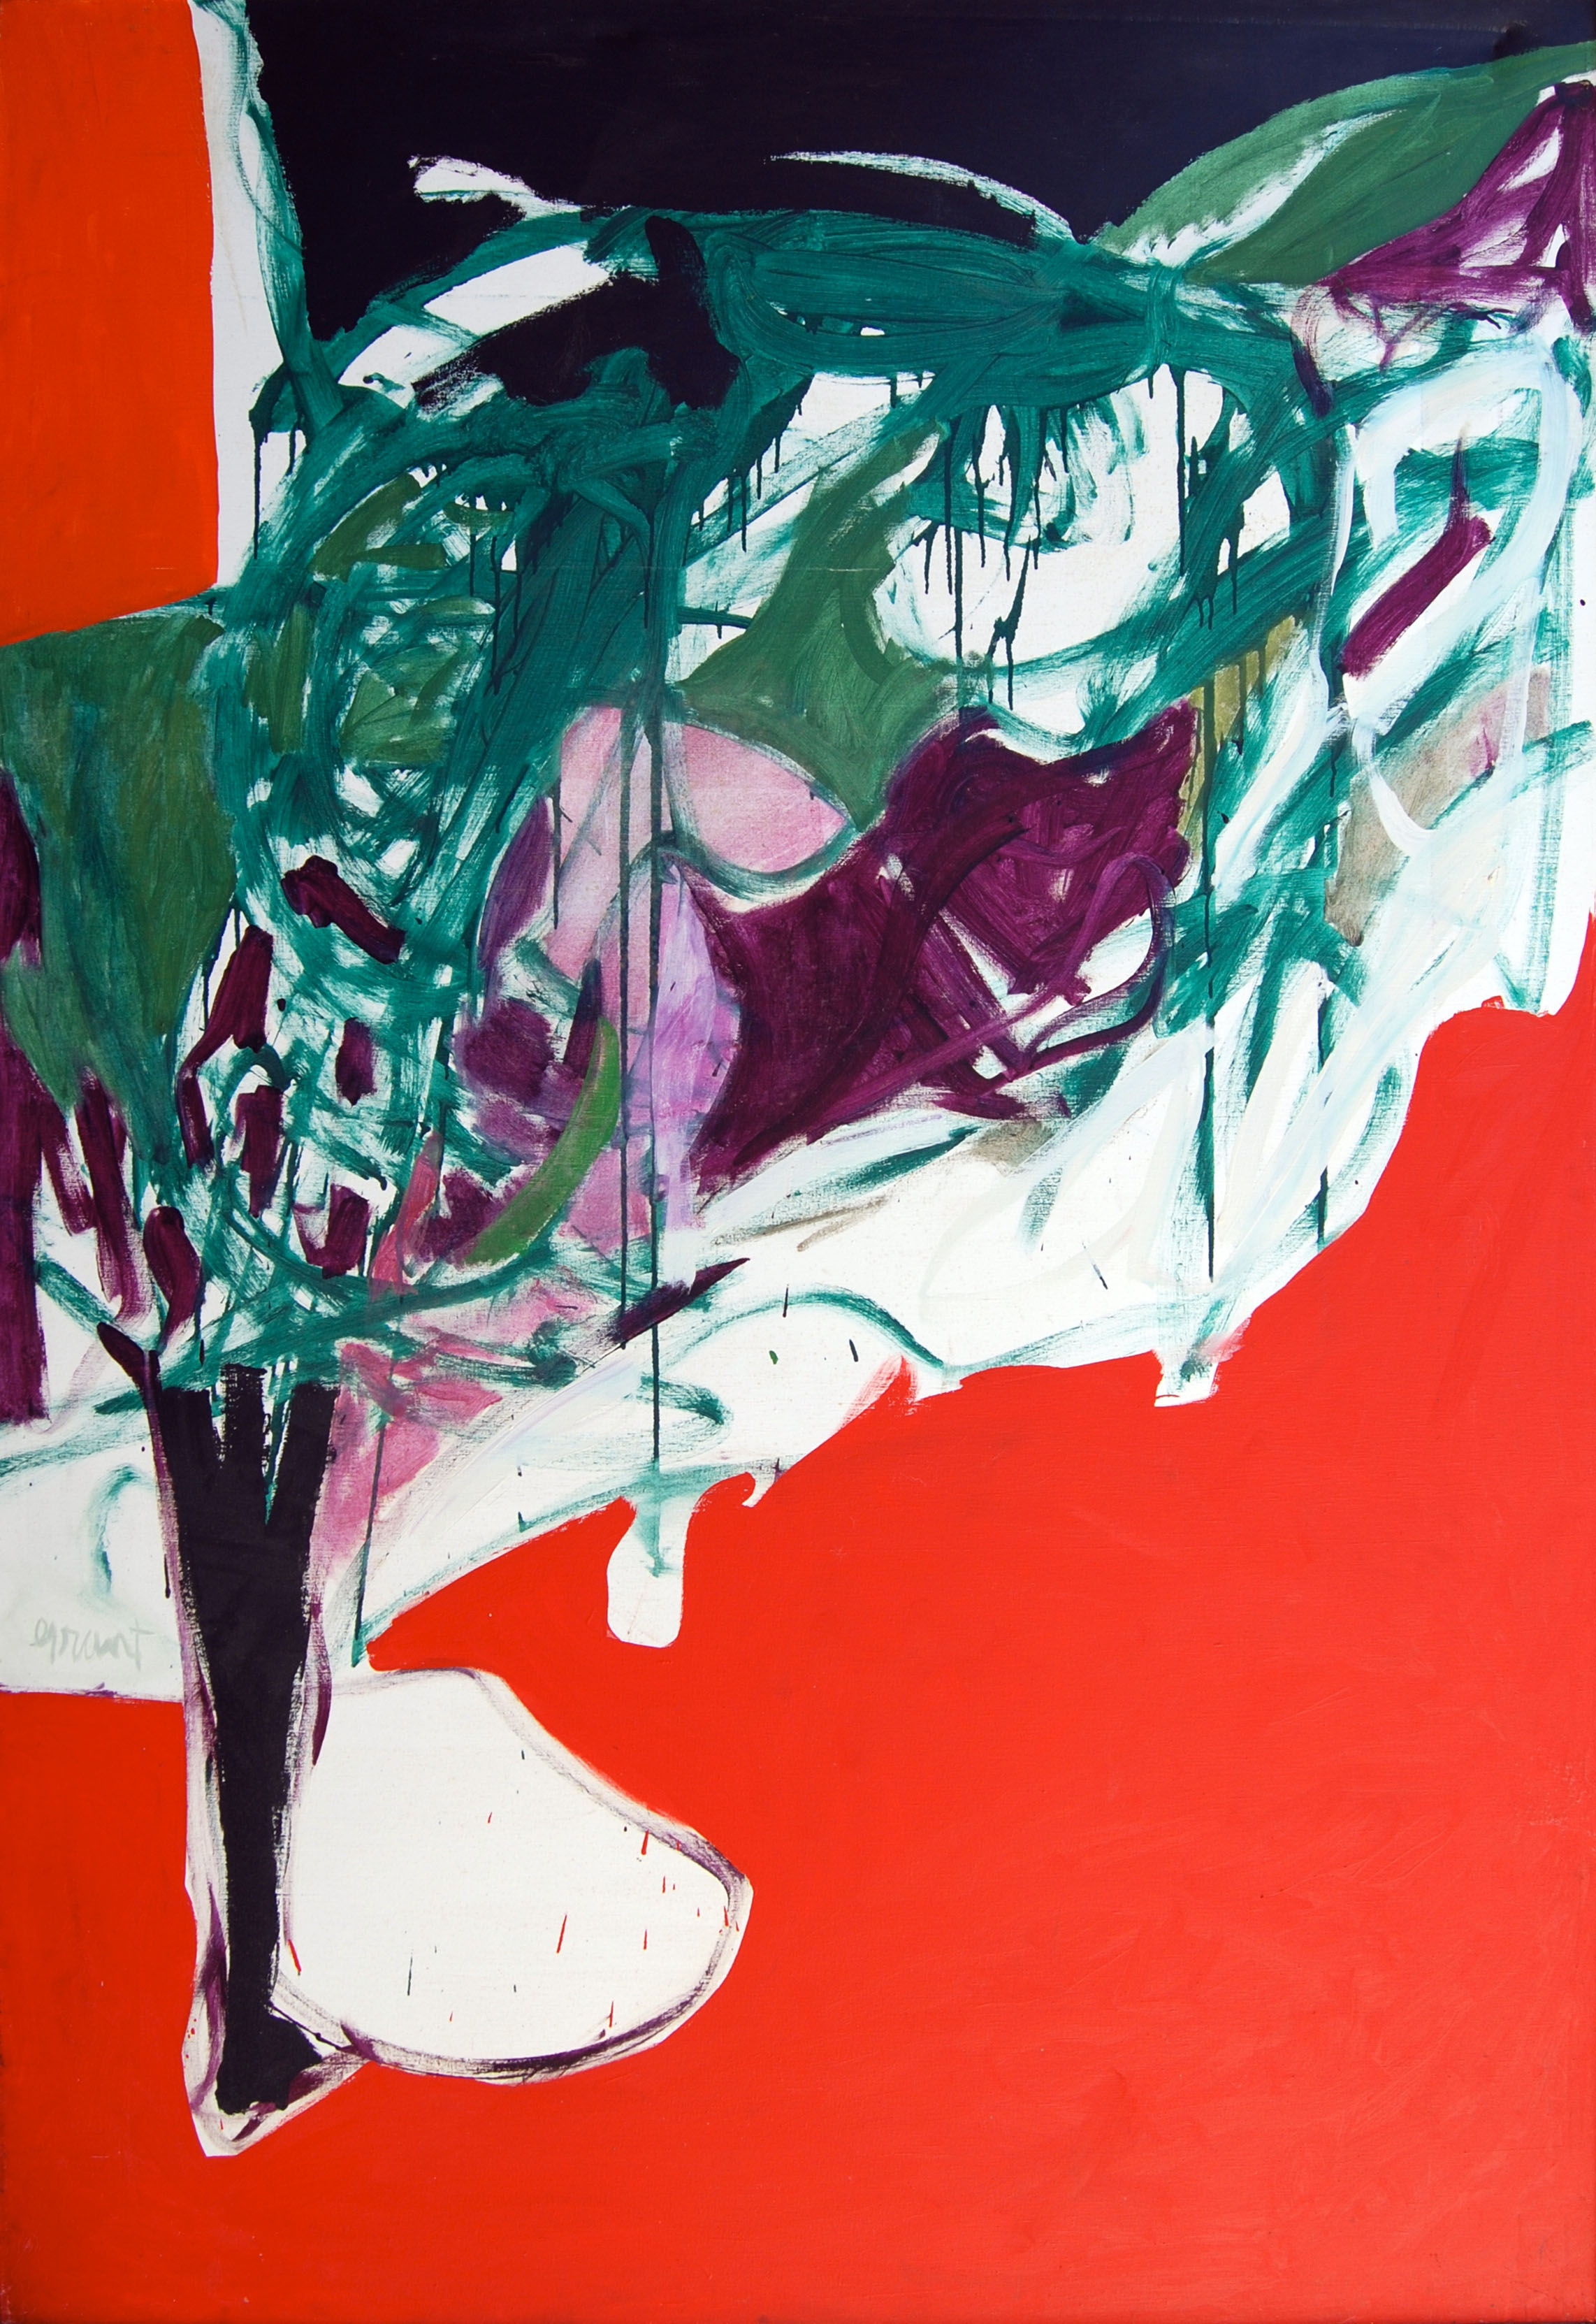 File:James Grant (artist) Abstract Expressionist.jpg